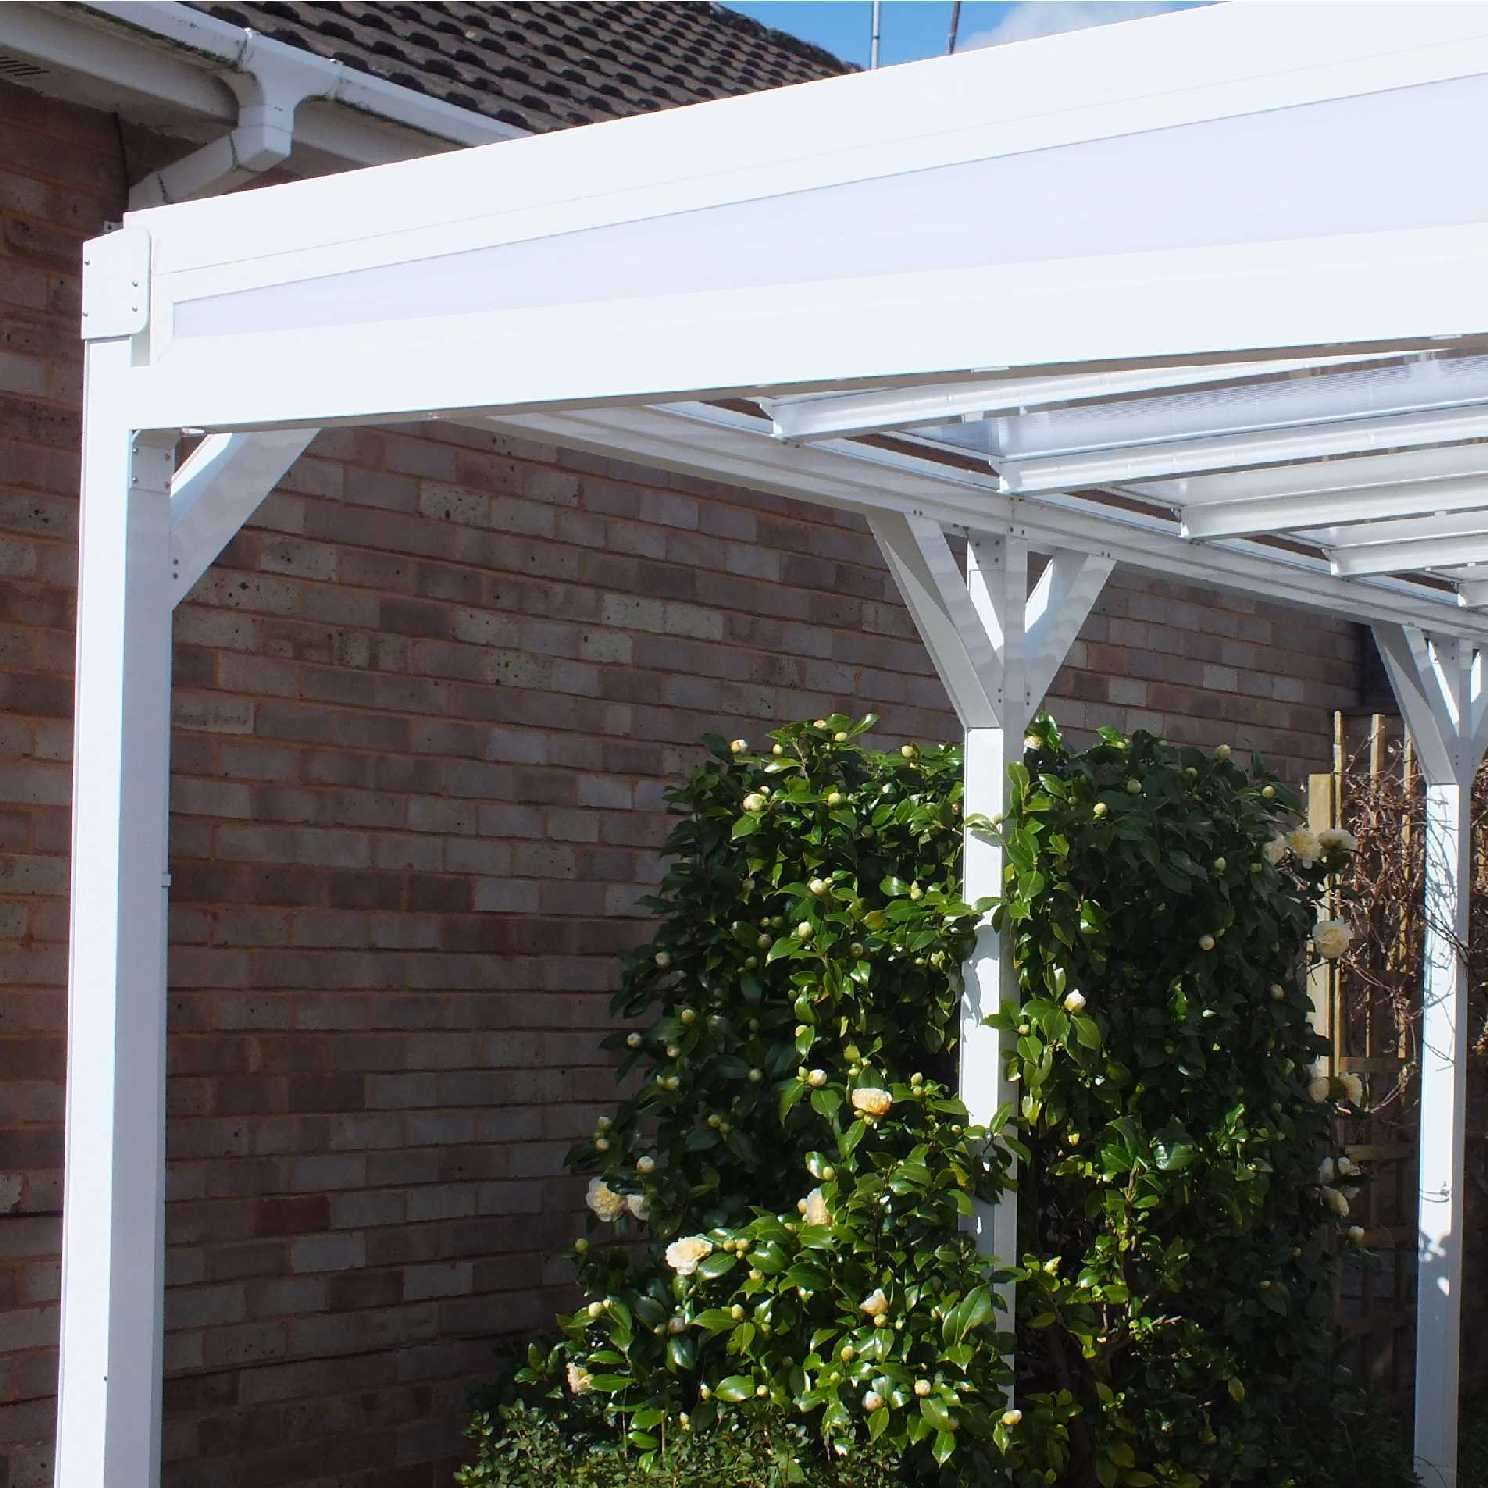 Omega Smart White Lean-To Canopy with 16mm Polycarbonate Glazing - 2.1m (W) x 2.5m (P), (2) Supporting Posts from Omega Build